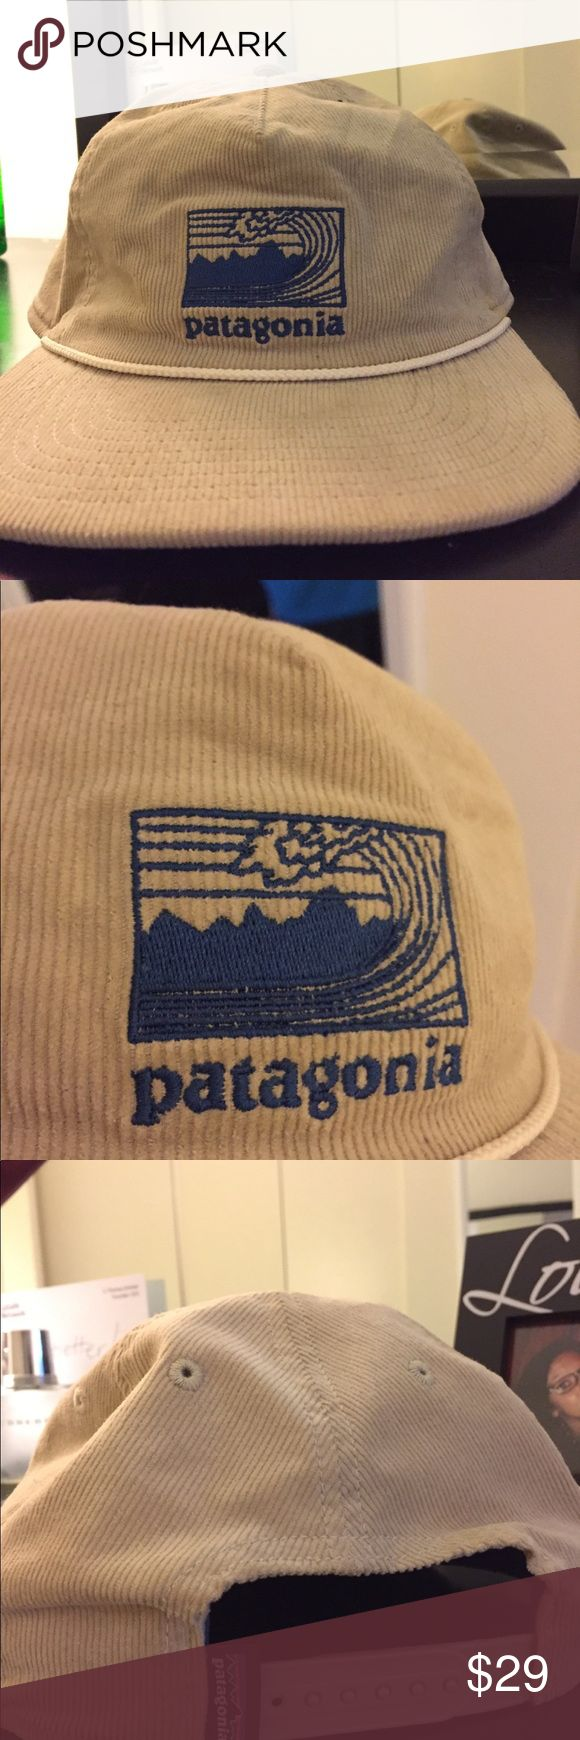 Men's Patagonia SnapBack RARE Corduroy Men's Patagonia hat. Like new condition. Patagonia Accessories Hats